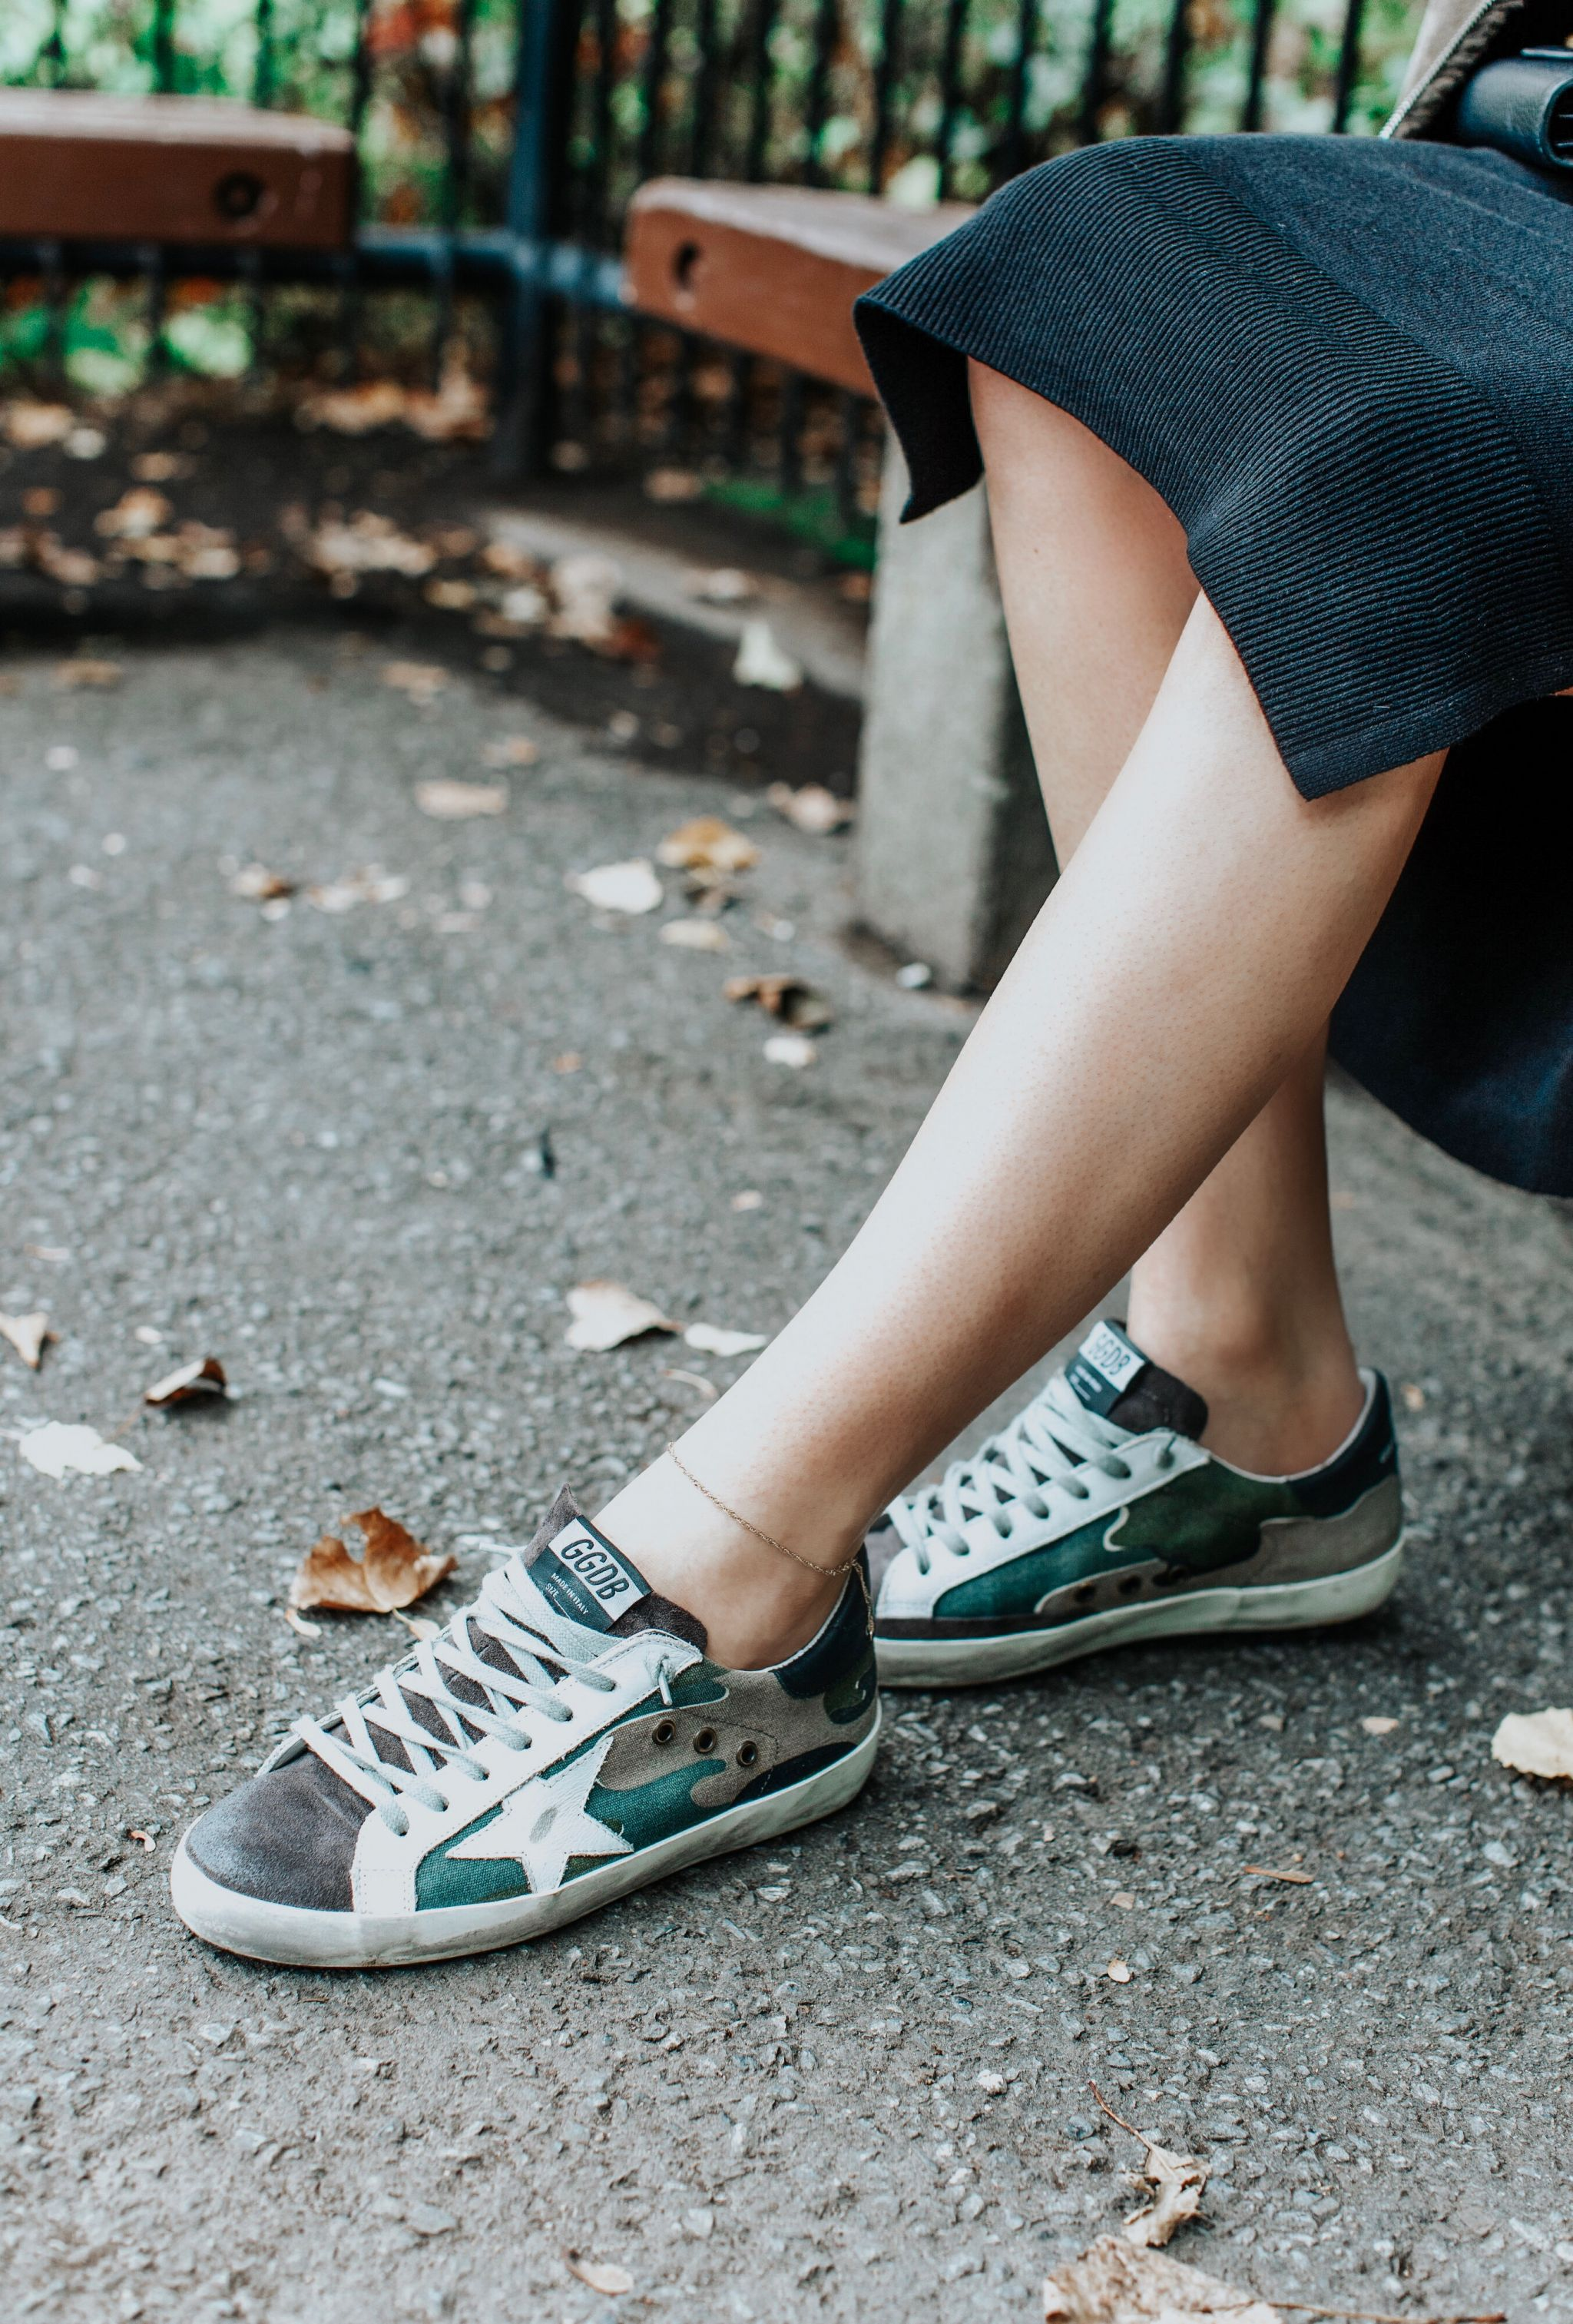 golden goose sneakers camo